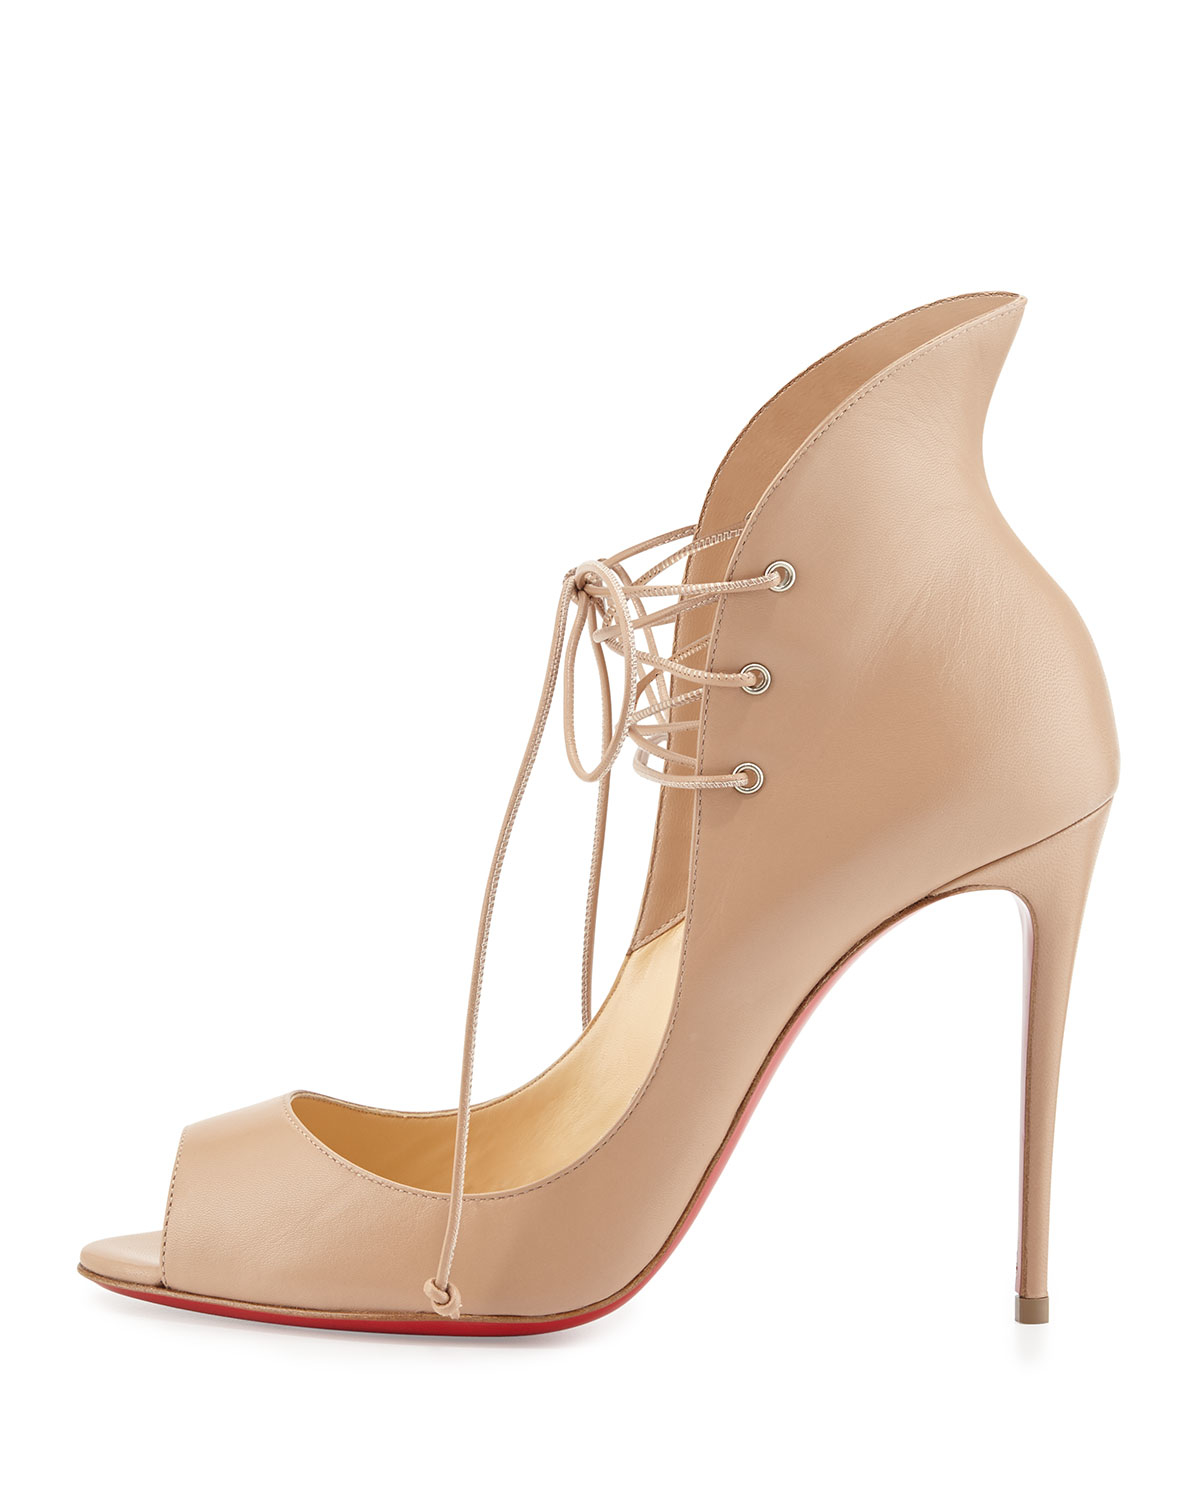 mens white christian louboutin - Christian louboutin Mega Vamp Lace-up Red Sole Pump in Pink (NUDE ...